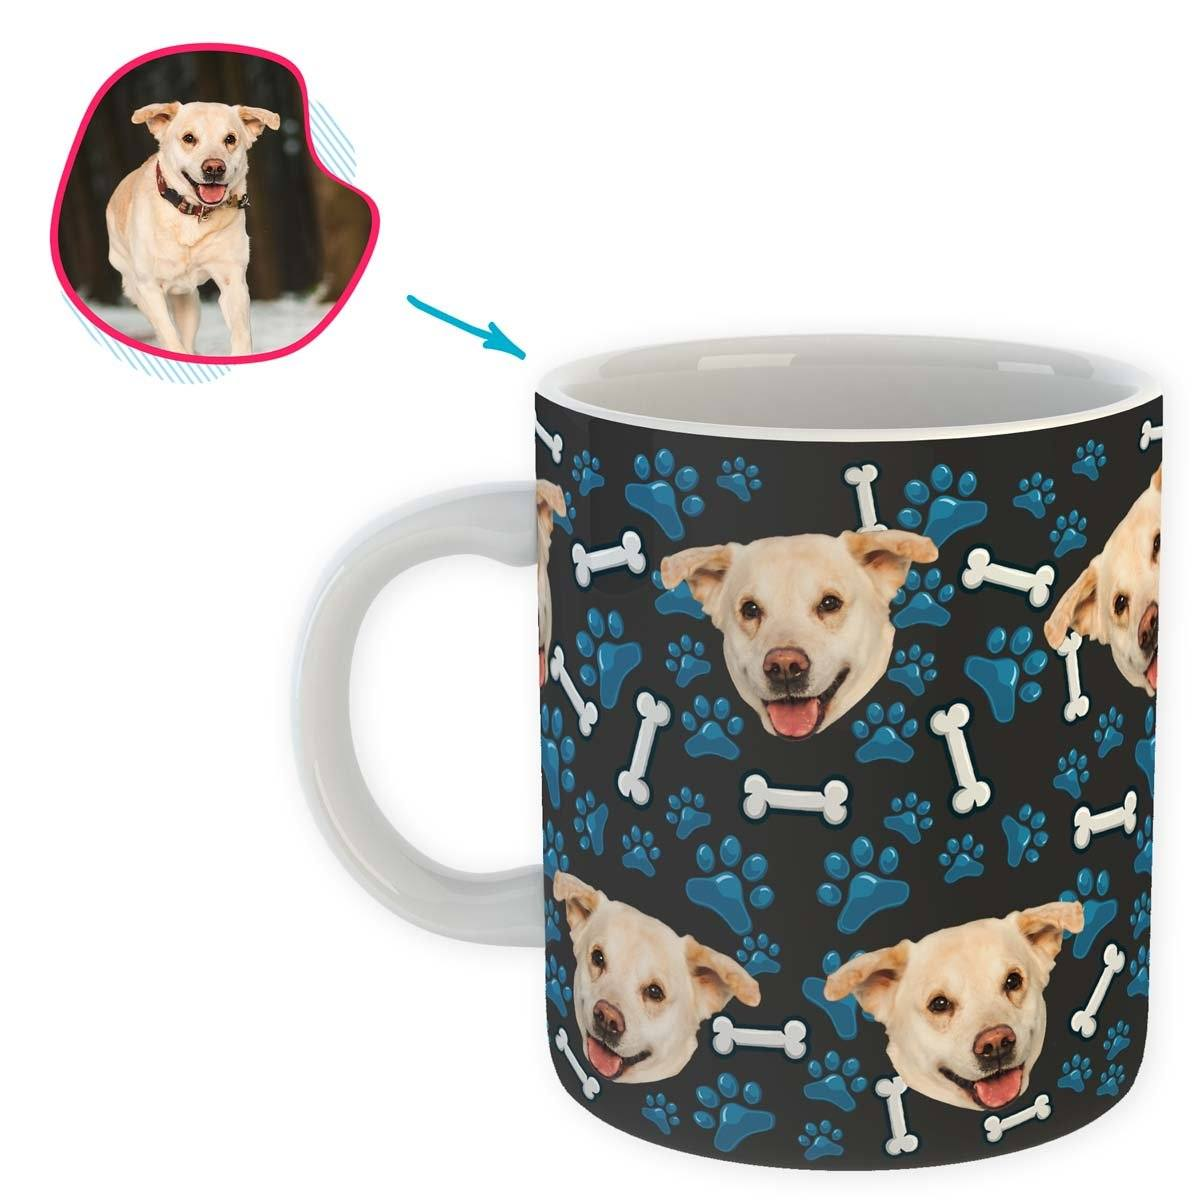 dark Dog mug personalized with photo of face printed on it